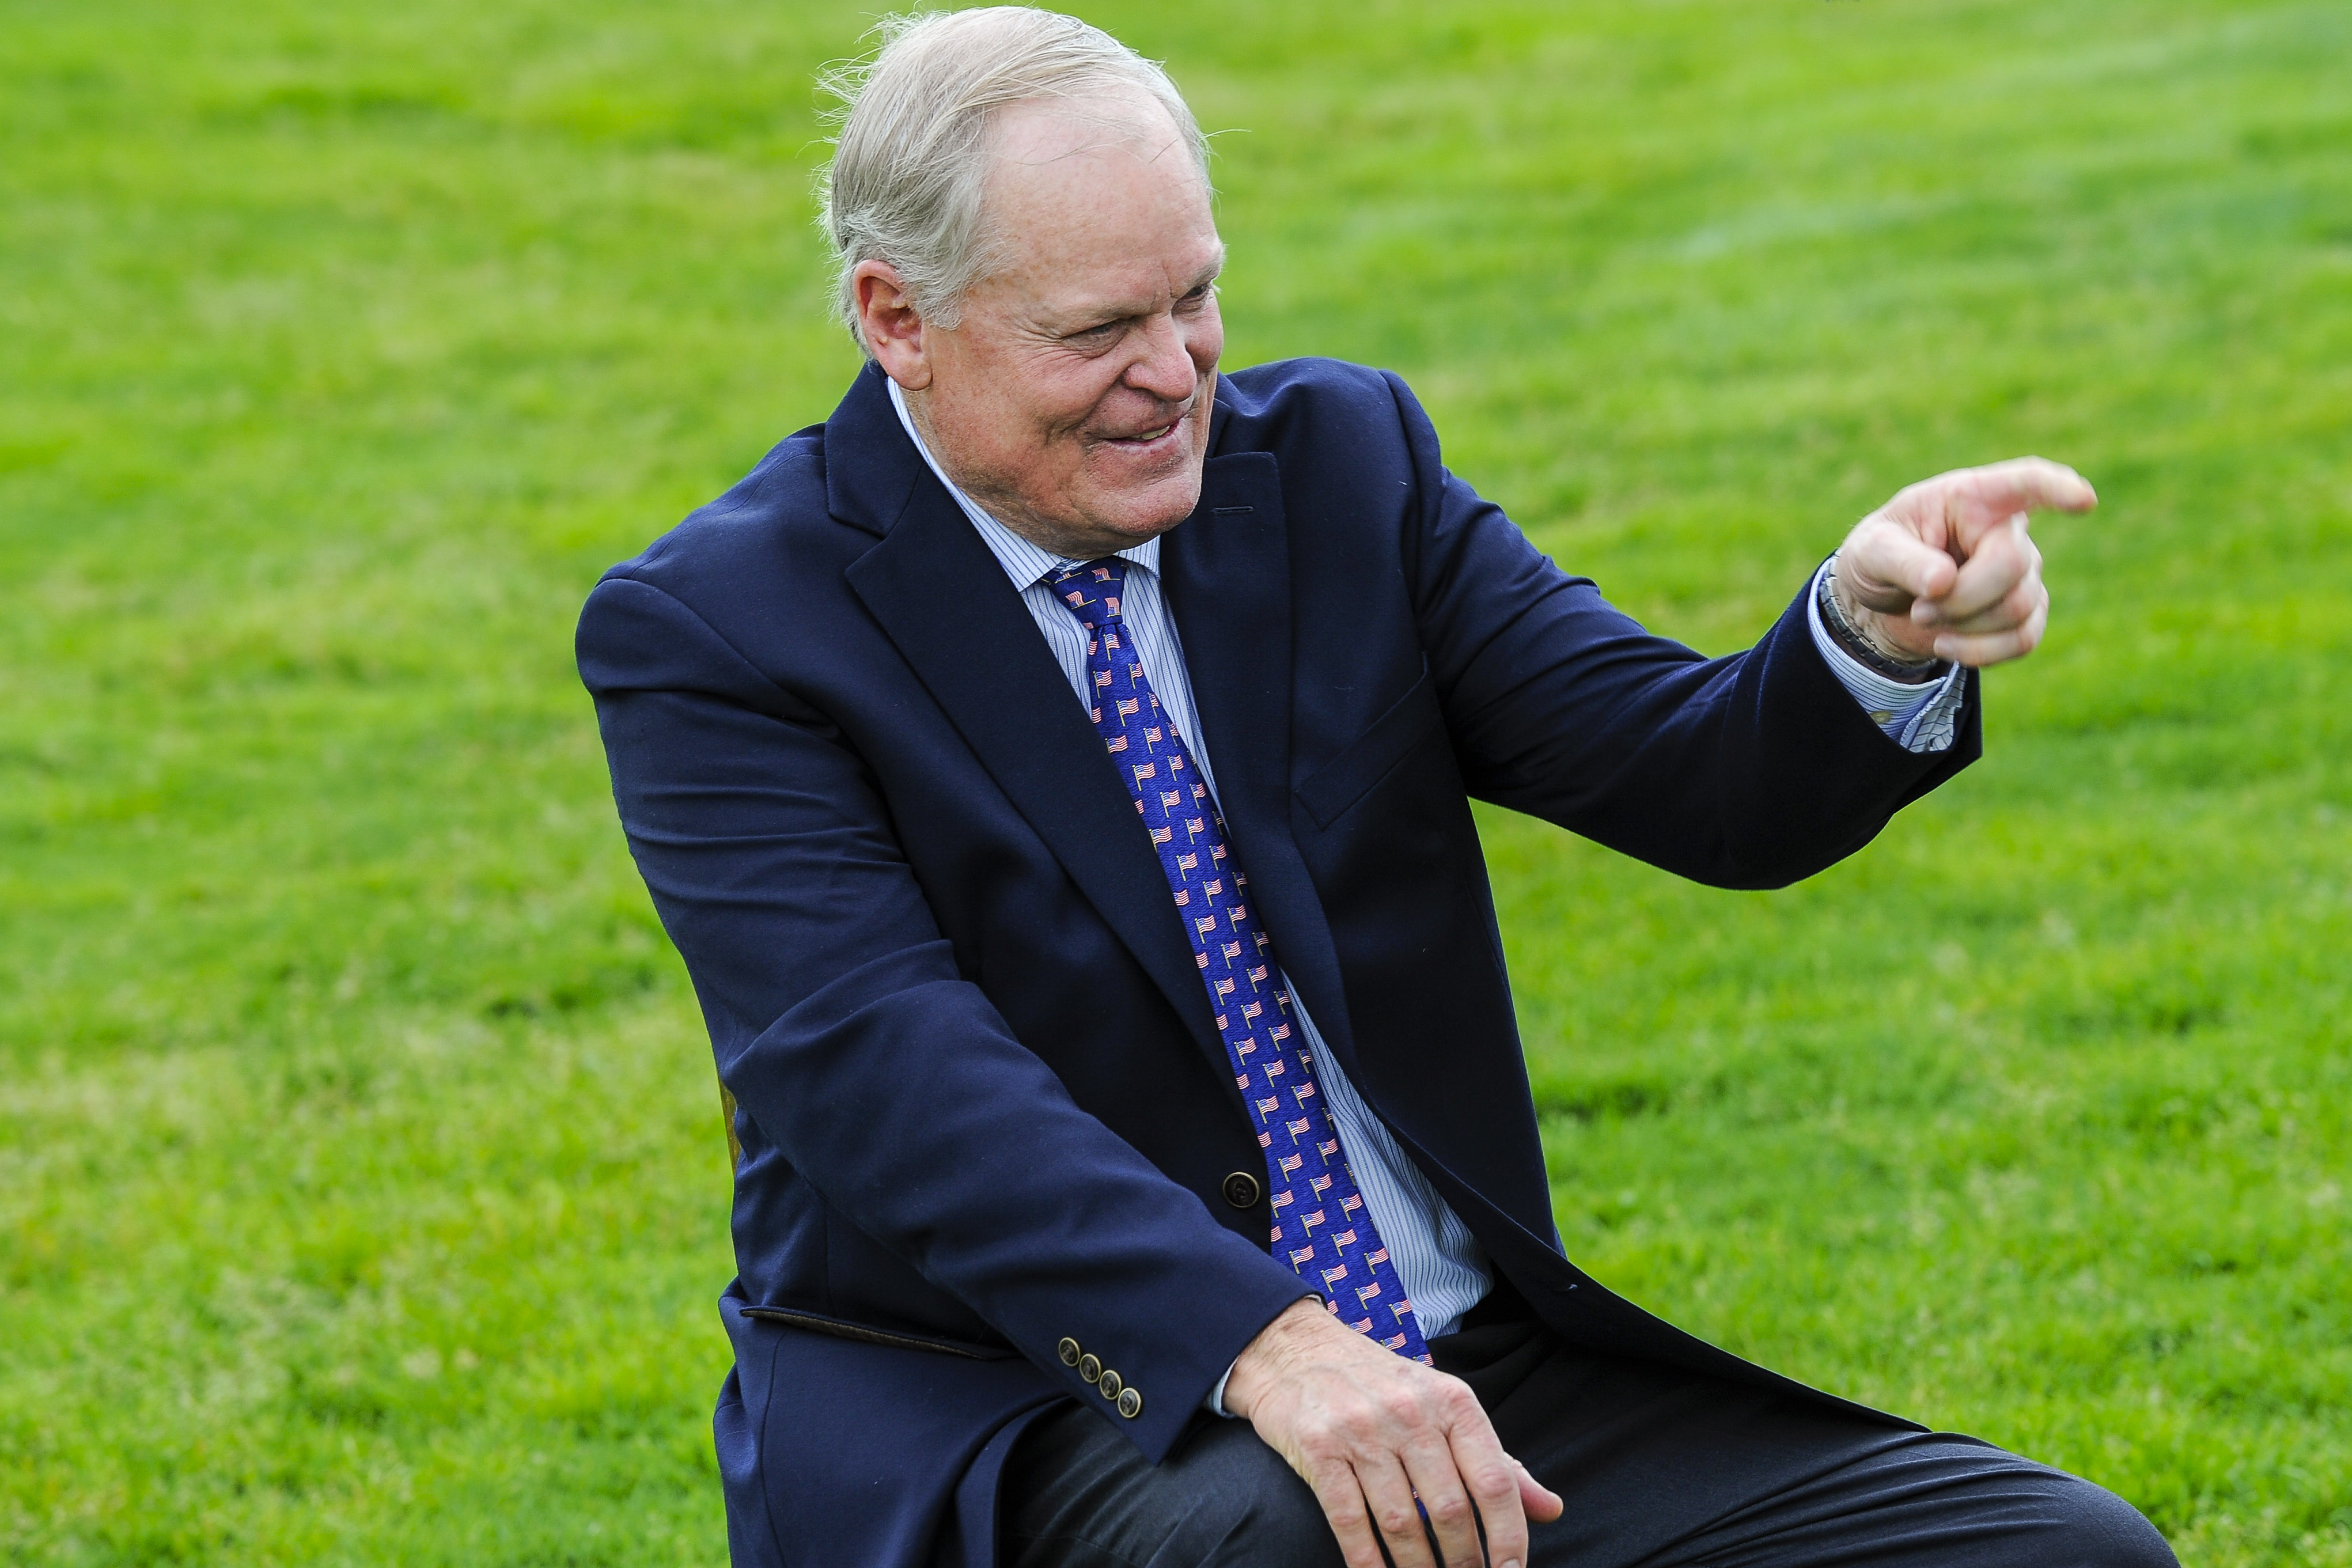 Europe Ryder Cup team 'worst in years' says American pundit Johnny Miller